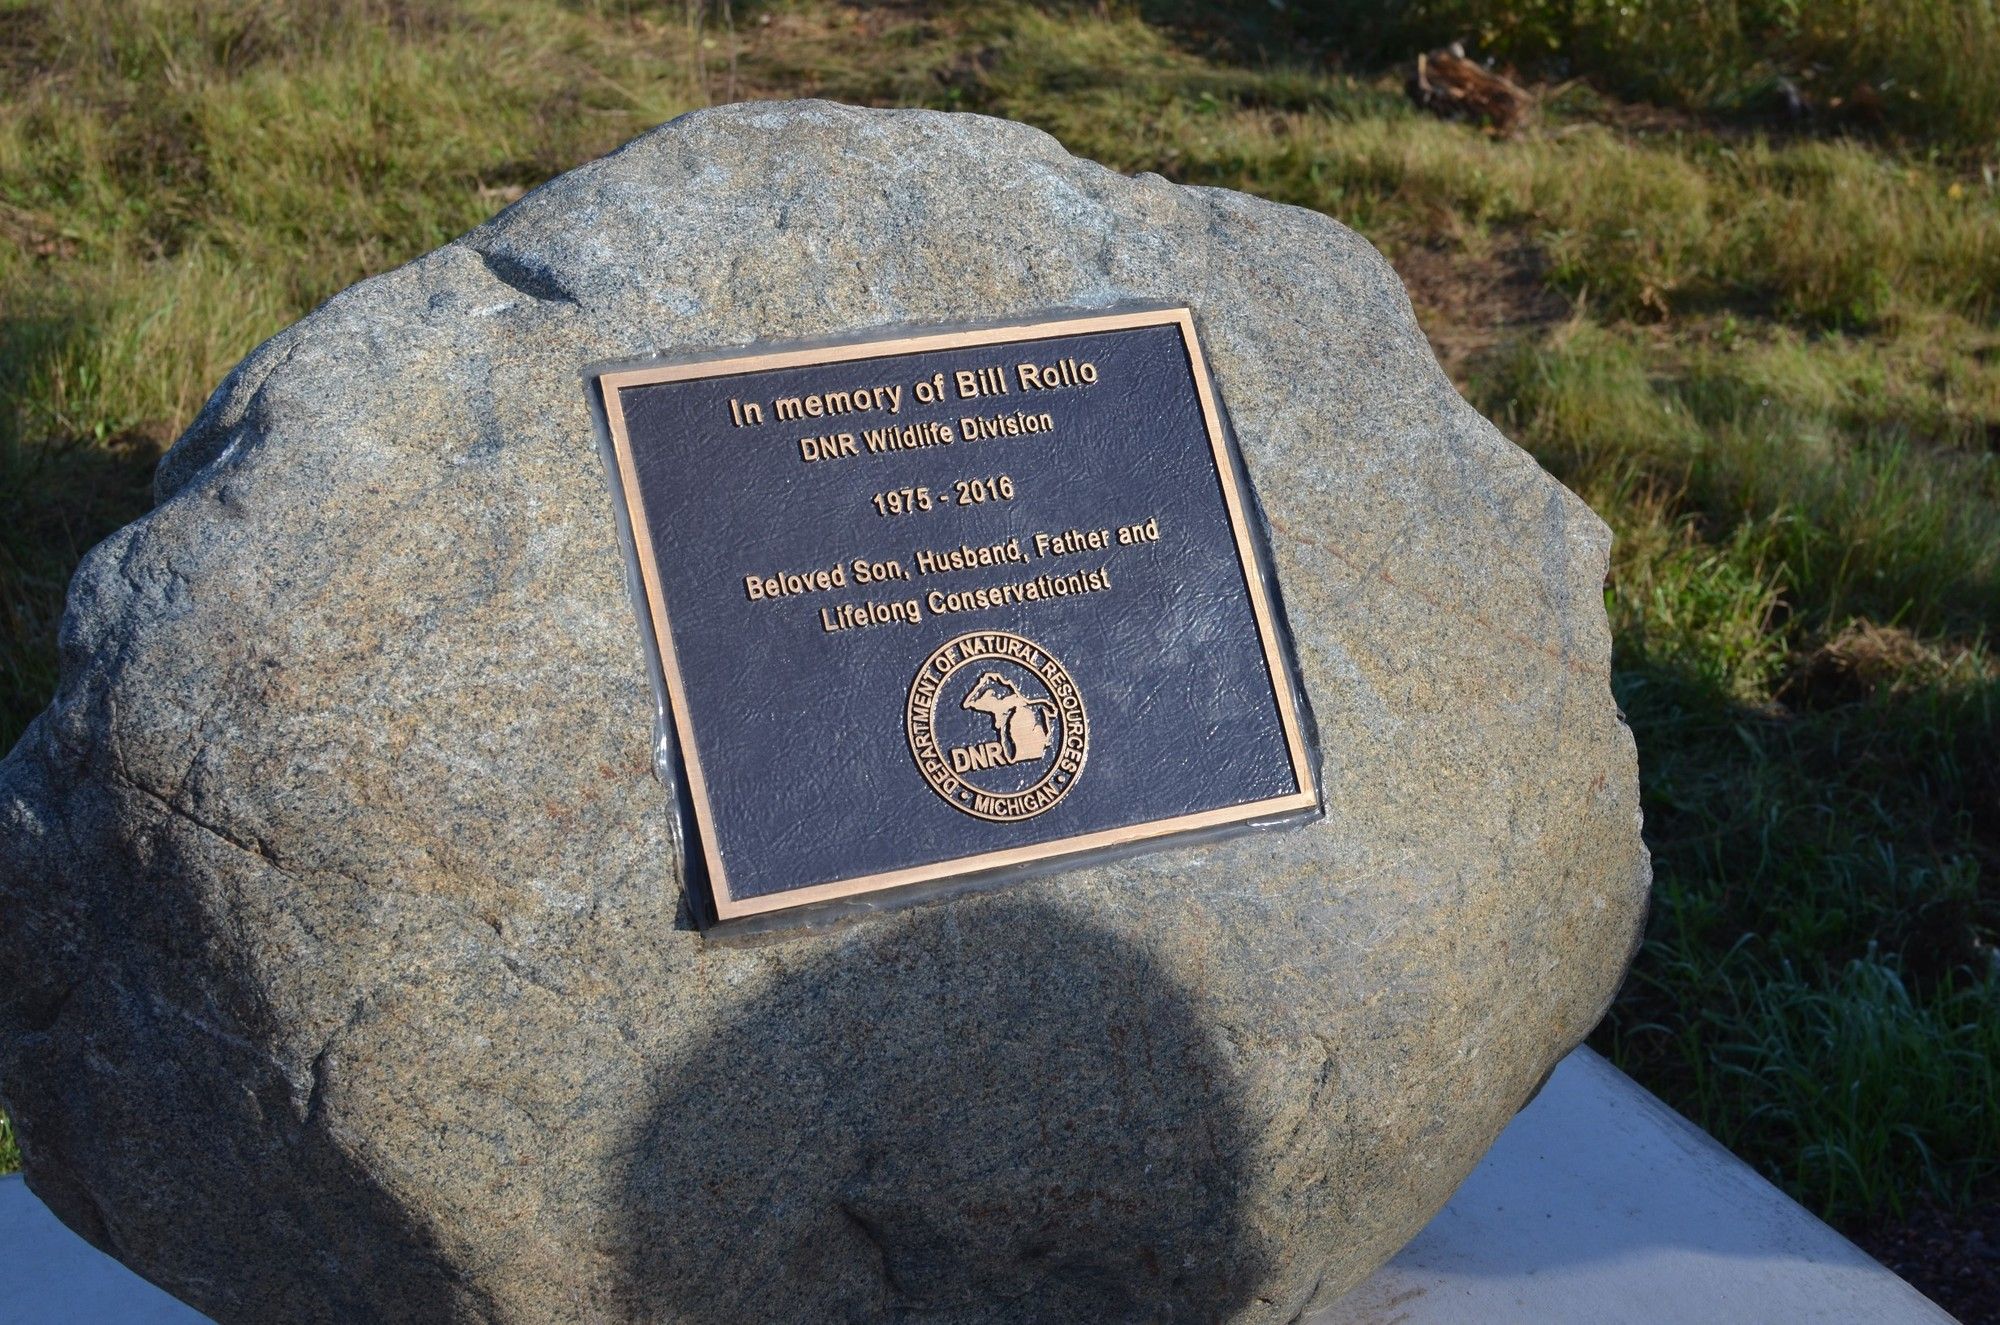 Michigan marquette county gwinn - The Memorial Stone For Bill Rollo At The Michigan Department Of Natural Resources Grouse Enhanced Management